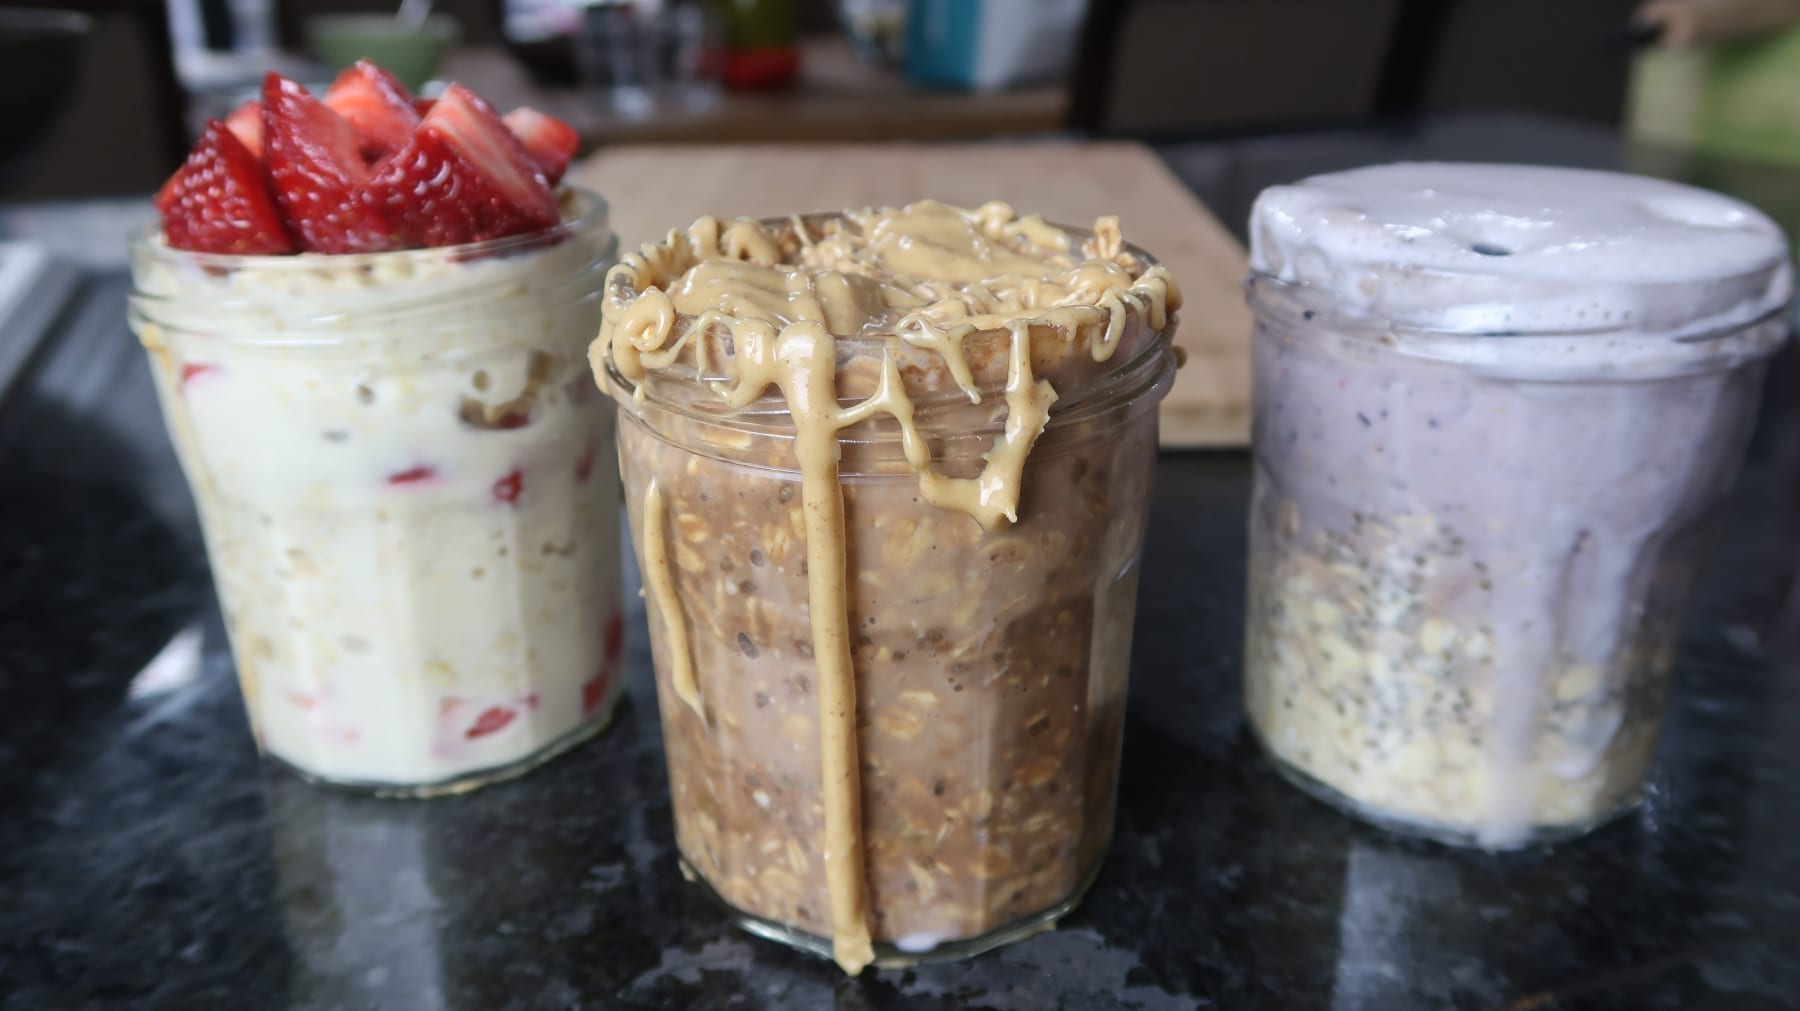 8 Protein Porridge Recipes That Are Delicious & Nutritious